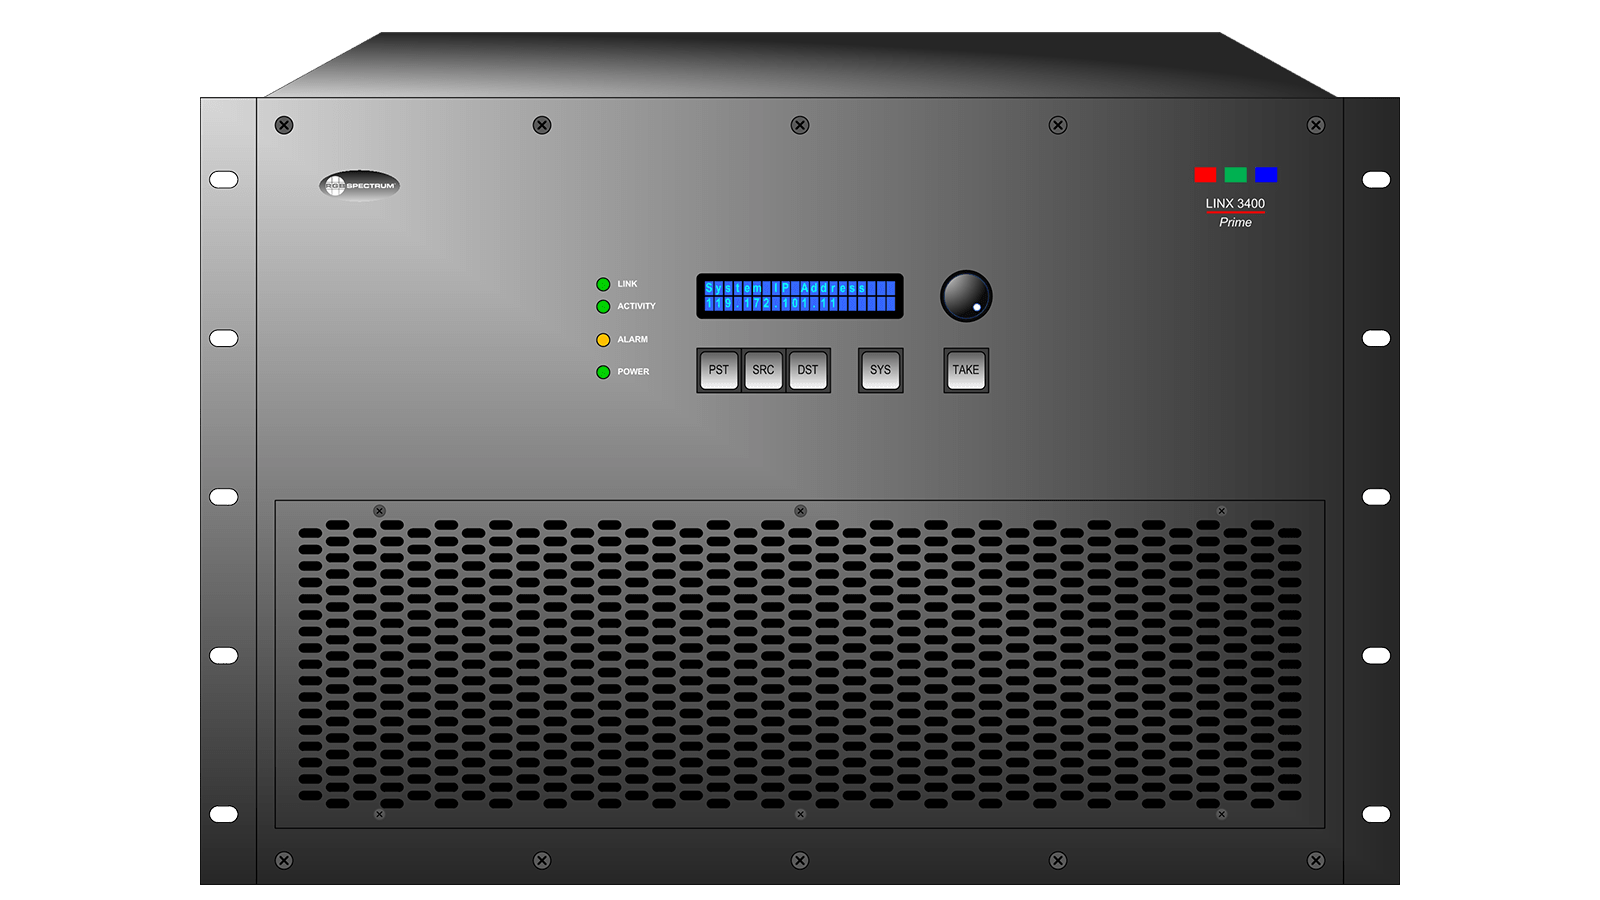 Linx 3400: Front Panel